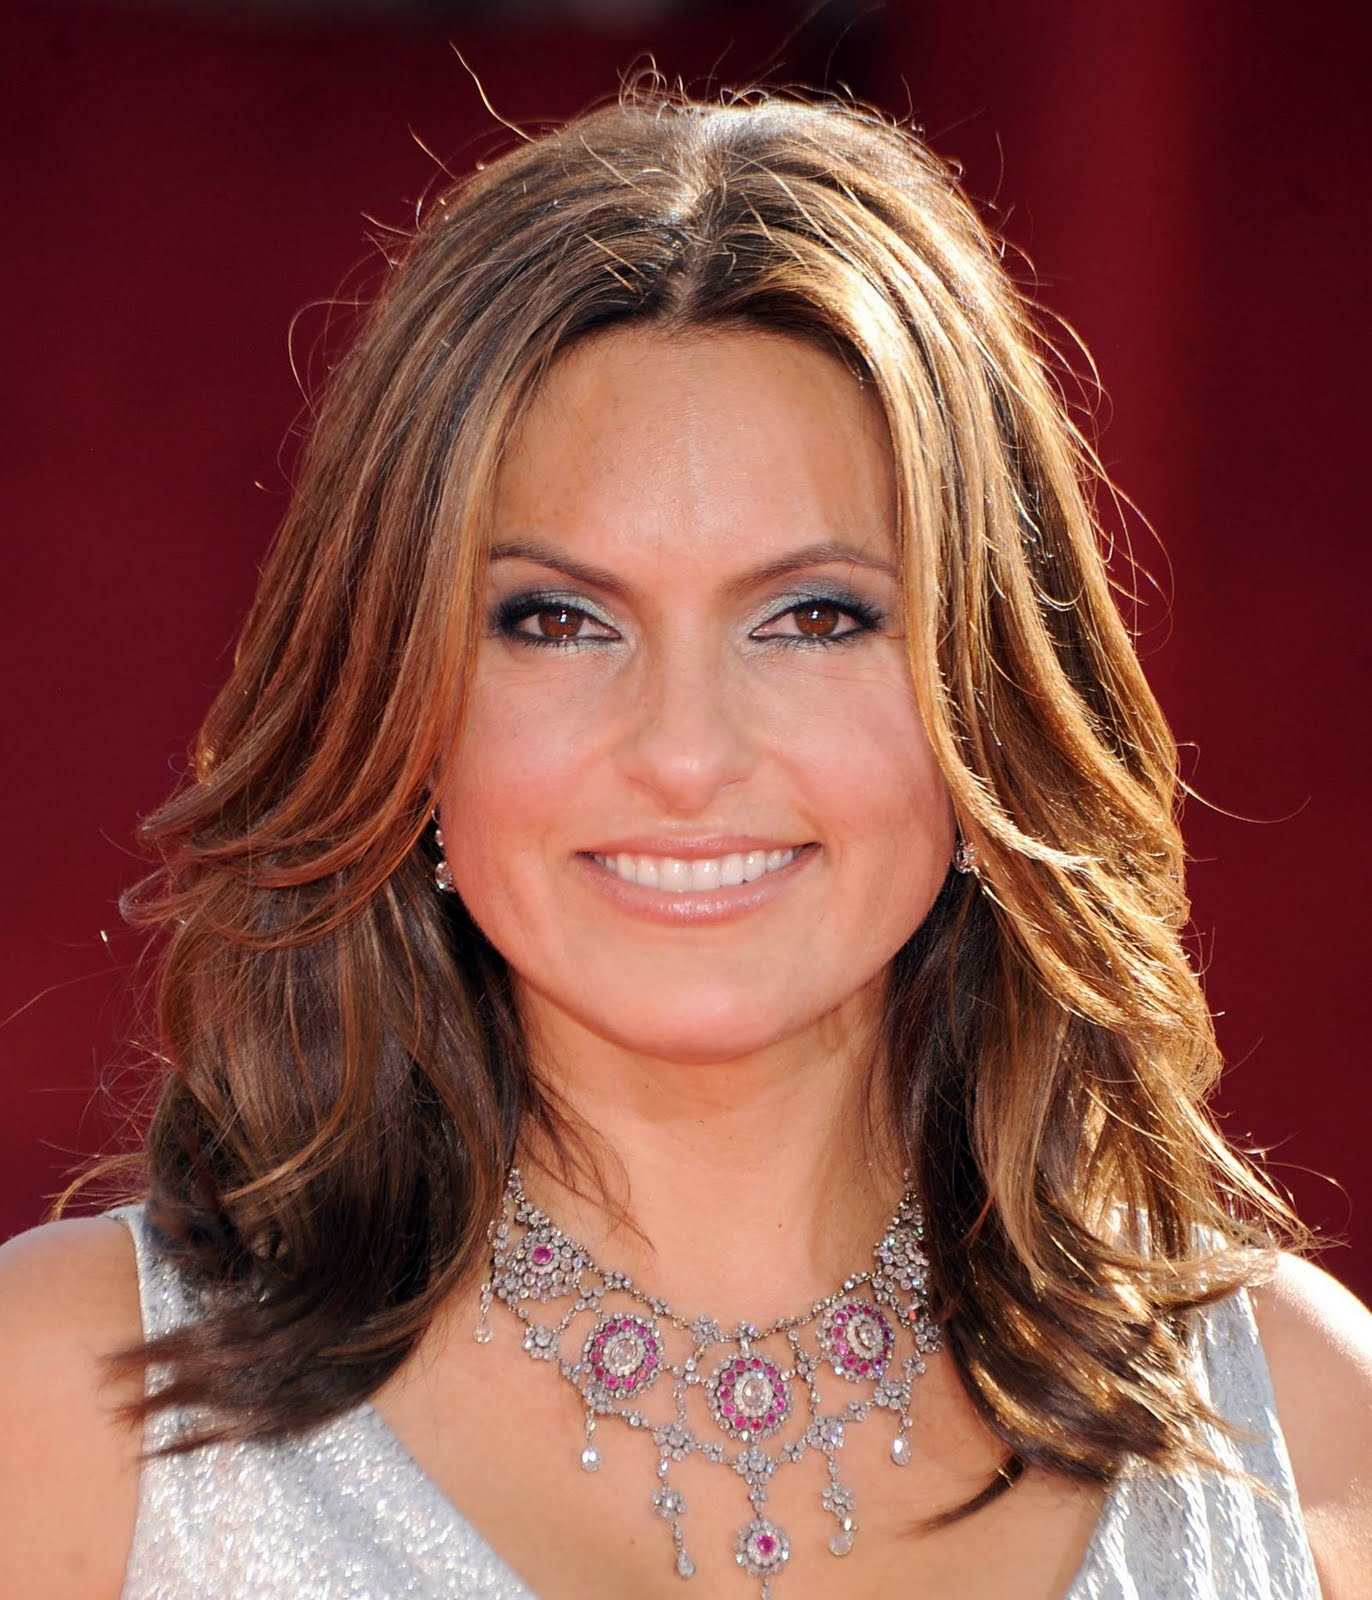 celebrity trendy hairstyle wallpaper ~ hairstyles 2011